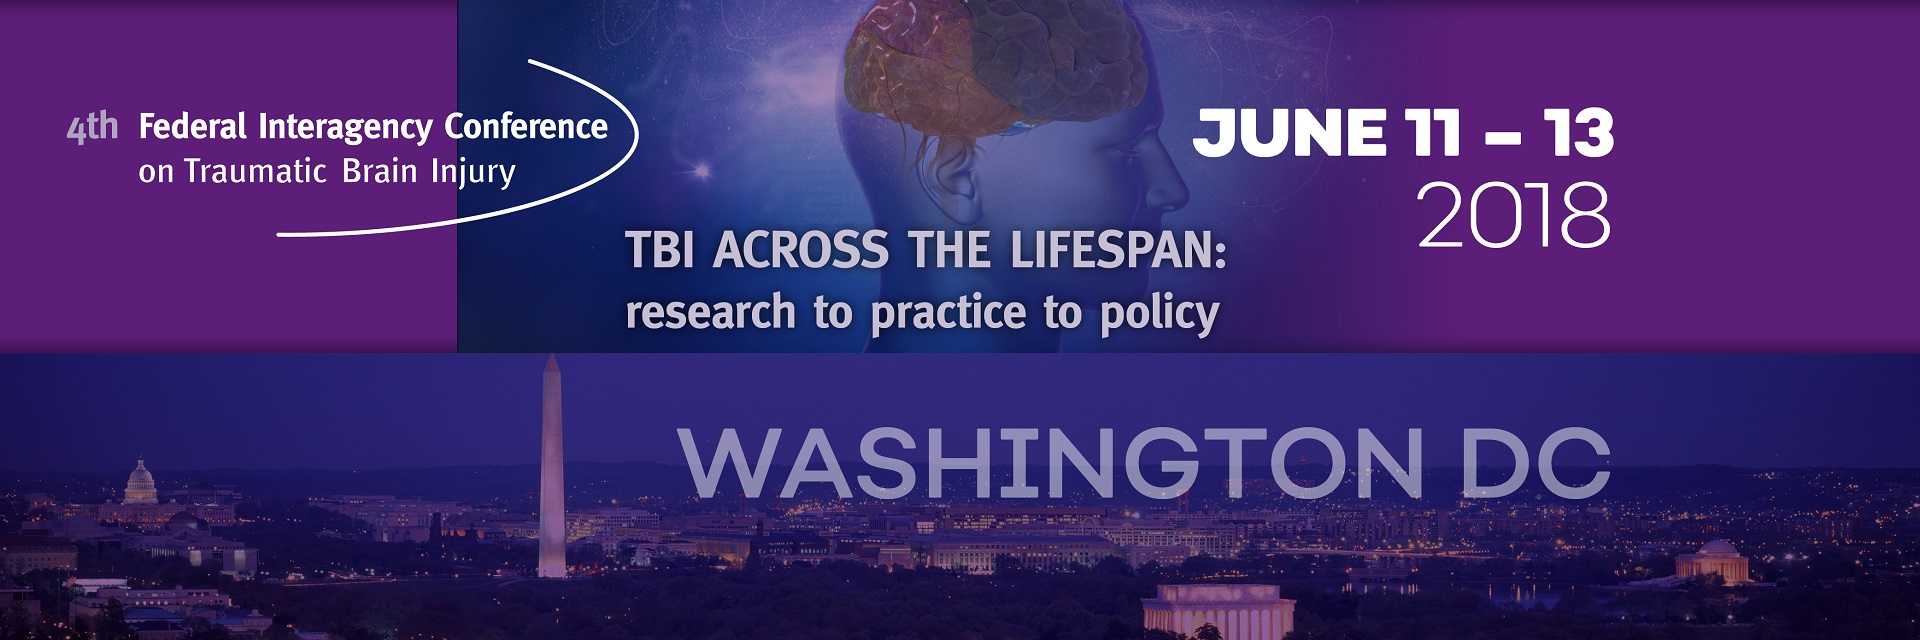 4th Federal Interagency Conference on Traumatic Brain Injury